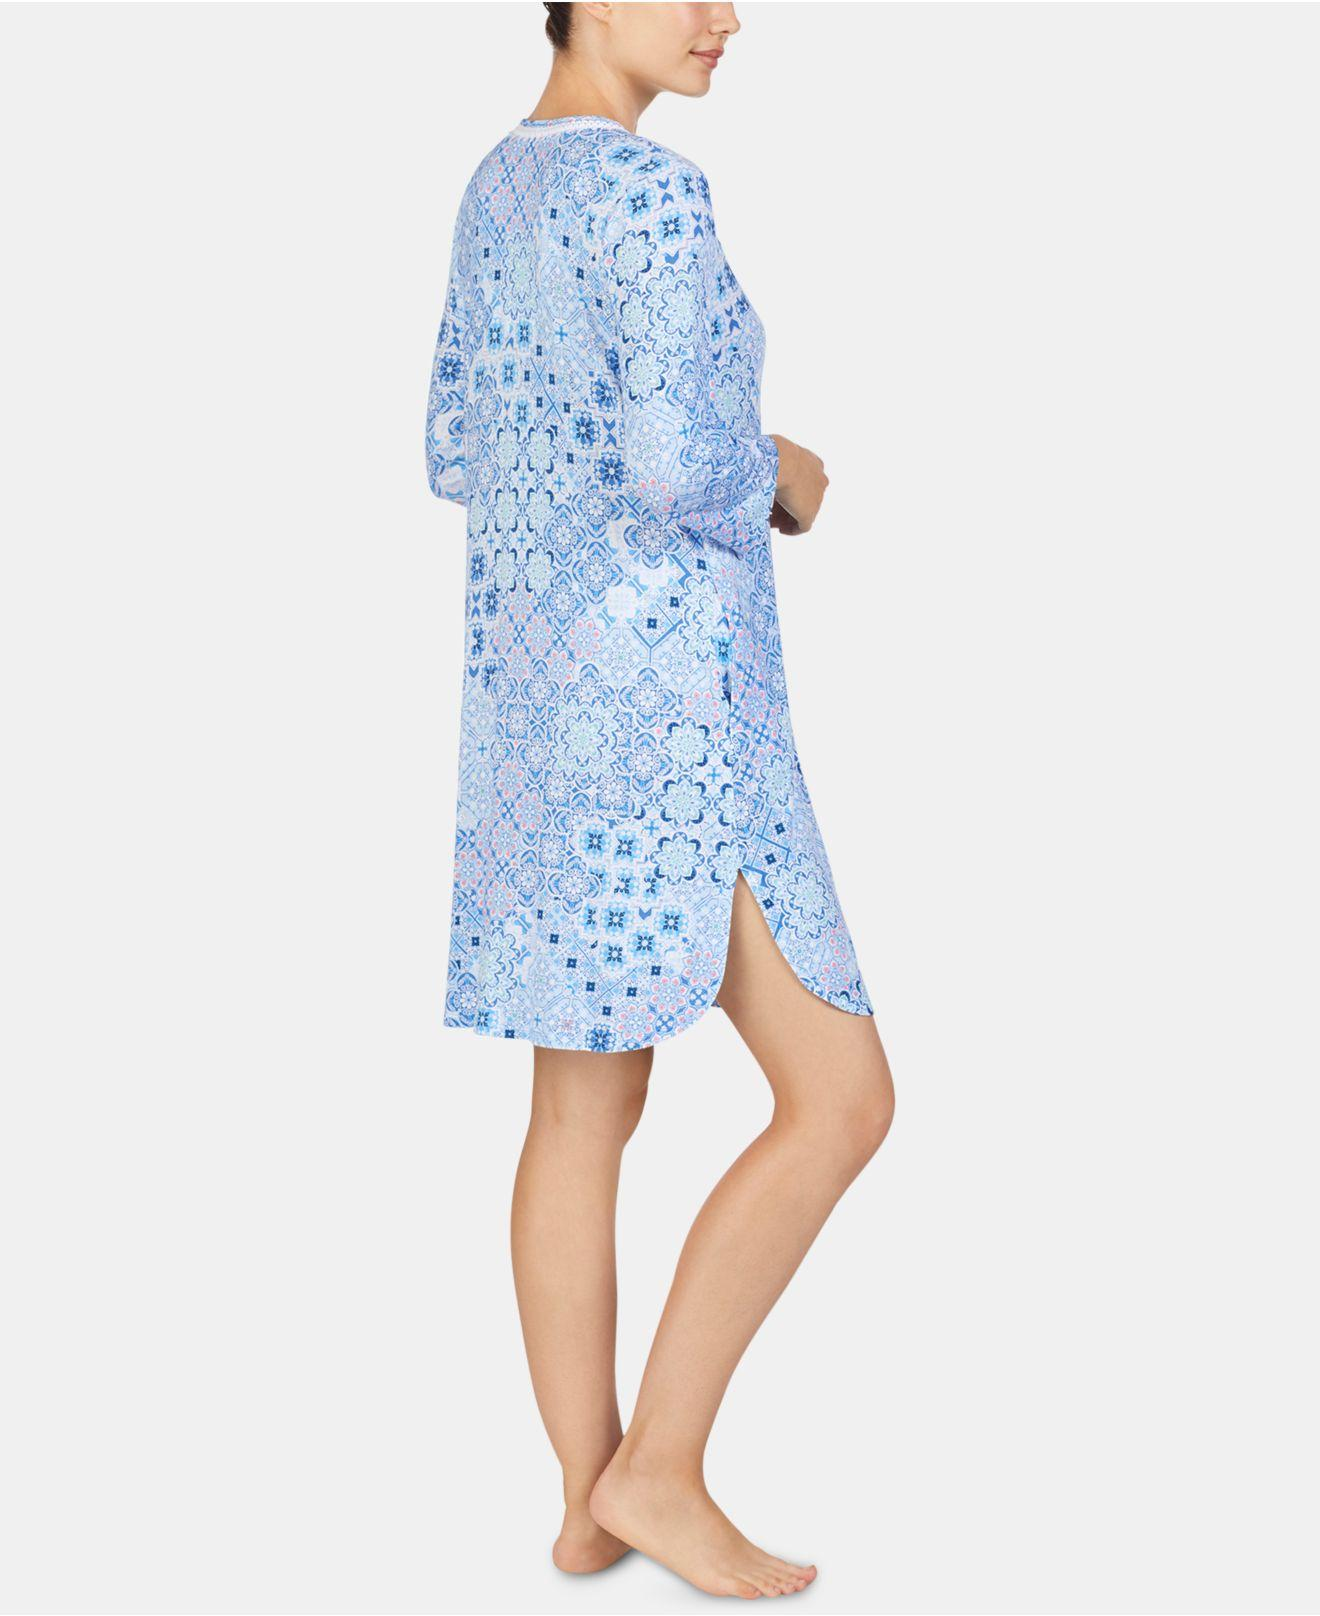 e3758135a5d Lyst - Ellen Tracy Printed Embroidered Trim Tunic Nightgown in Blue